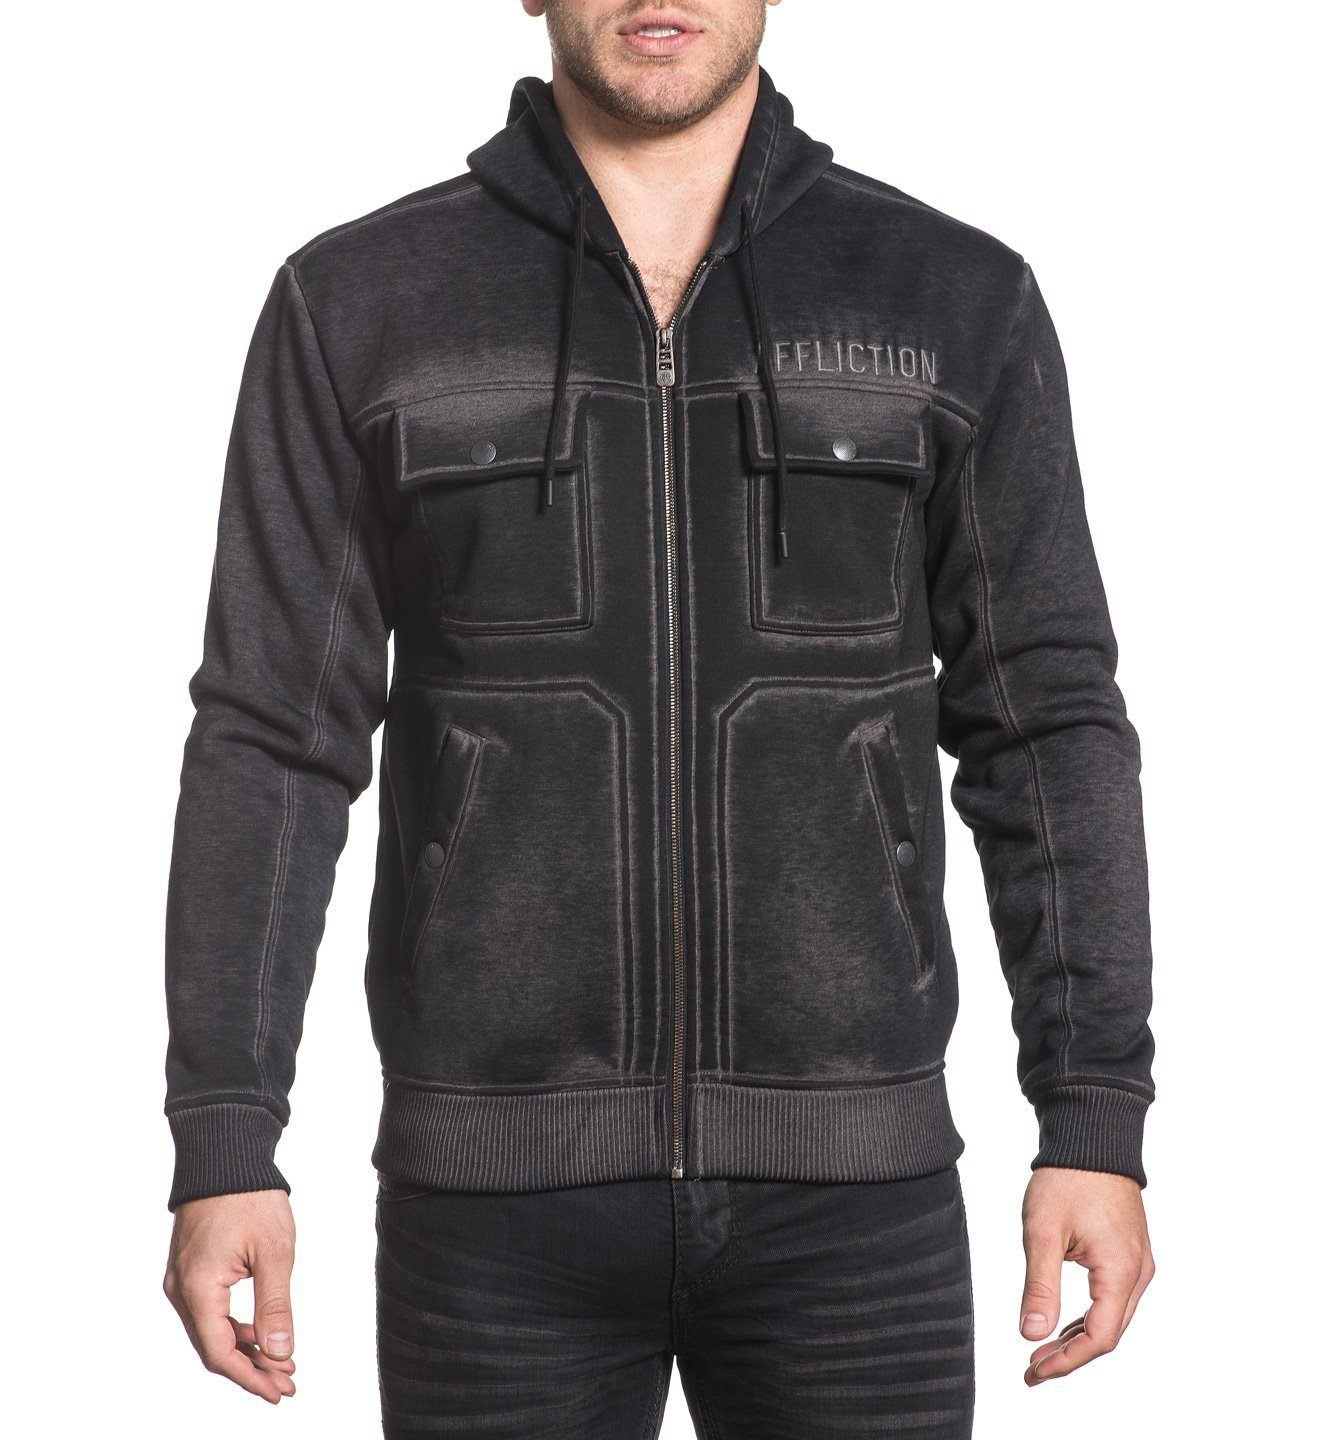 Invasion - Mens Hooded Sweatshirts - Affliction Clothing